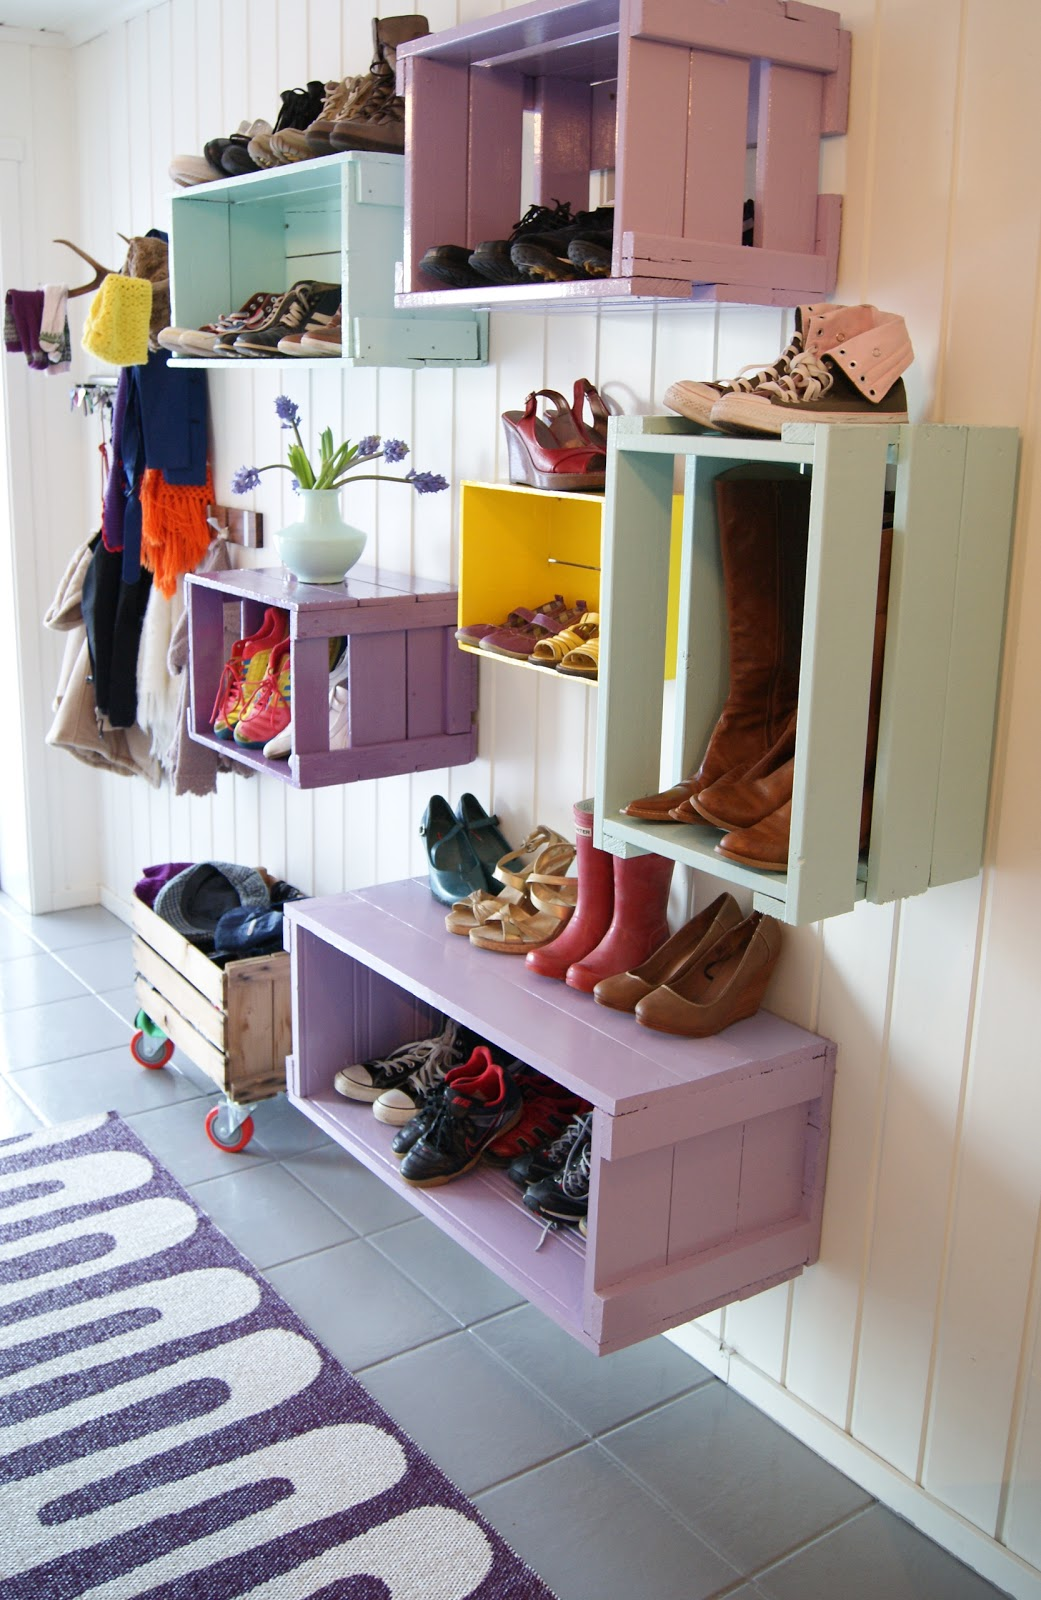 08-diy-wood-crate-projects-homebnc